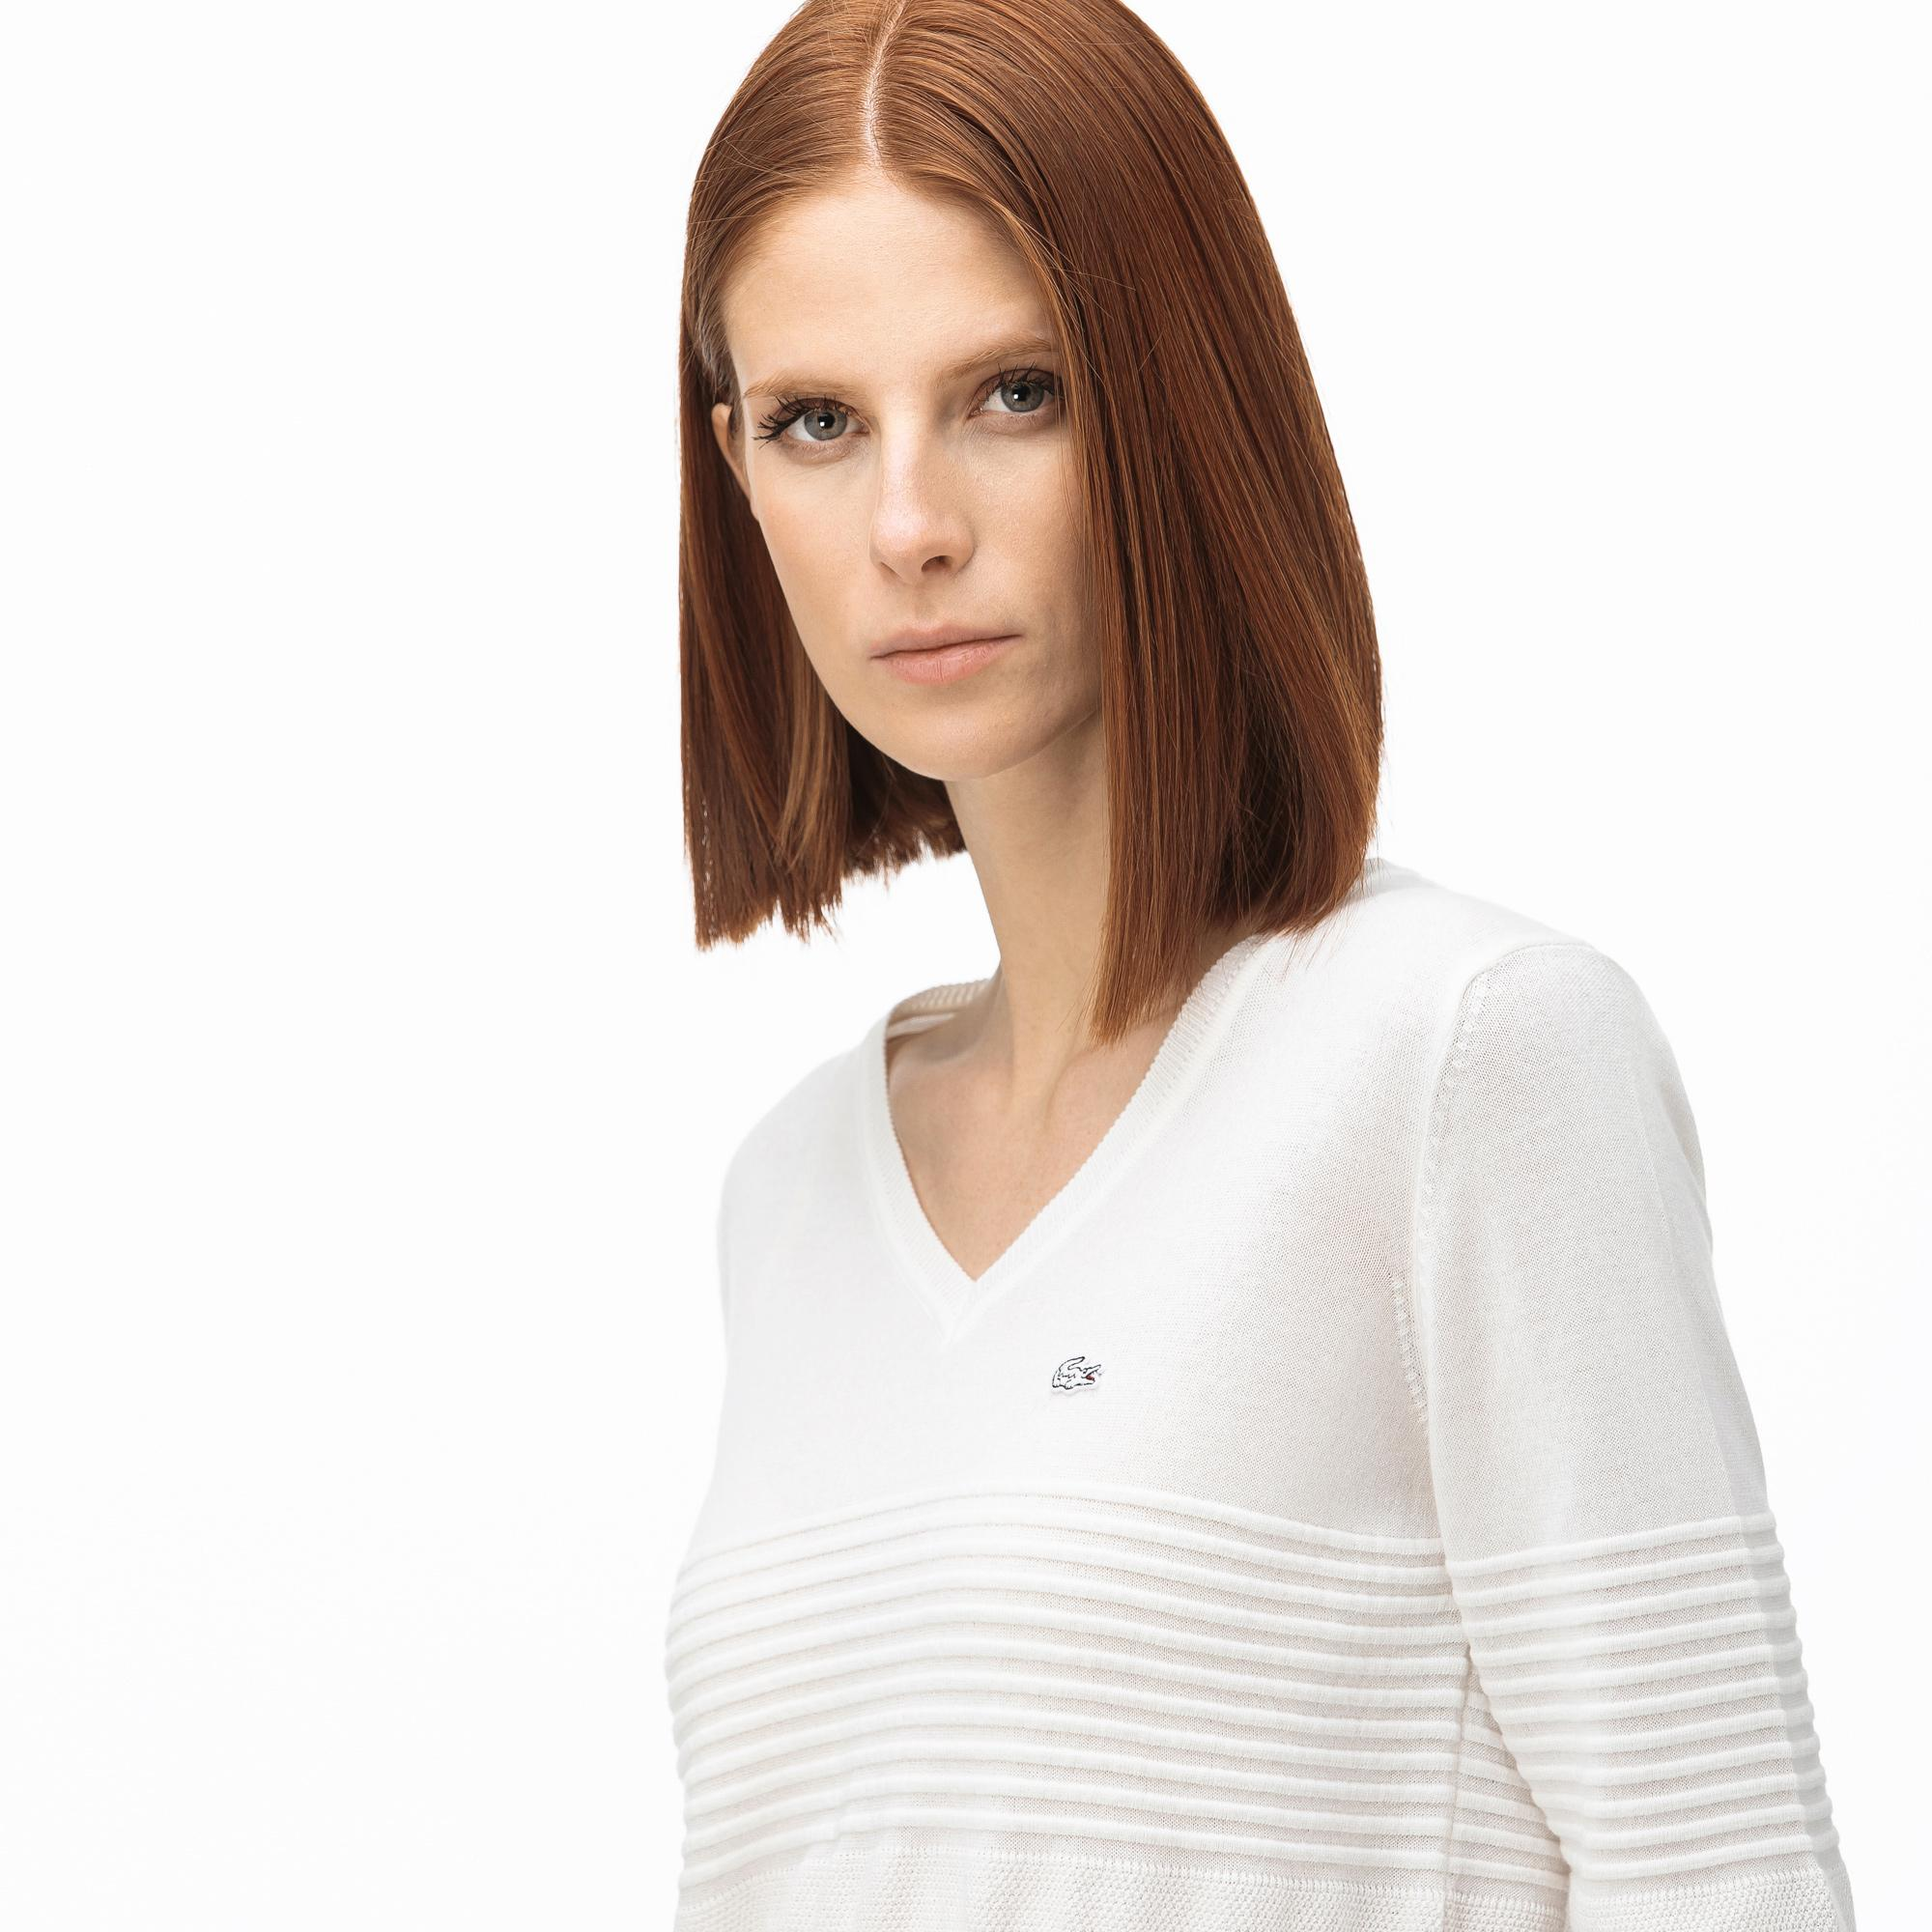 Lacoste Women's V-Neck Patterned Tricot Sweater